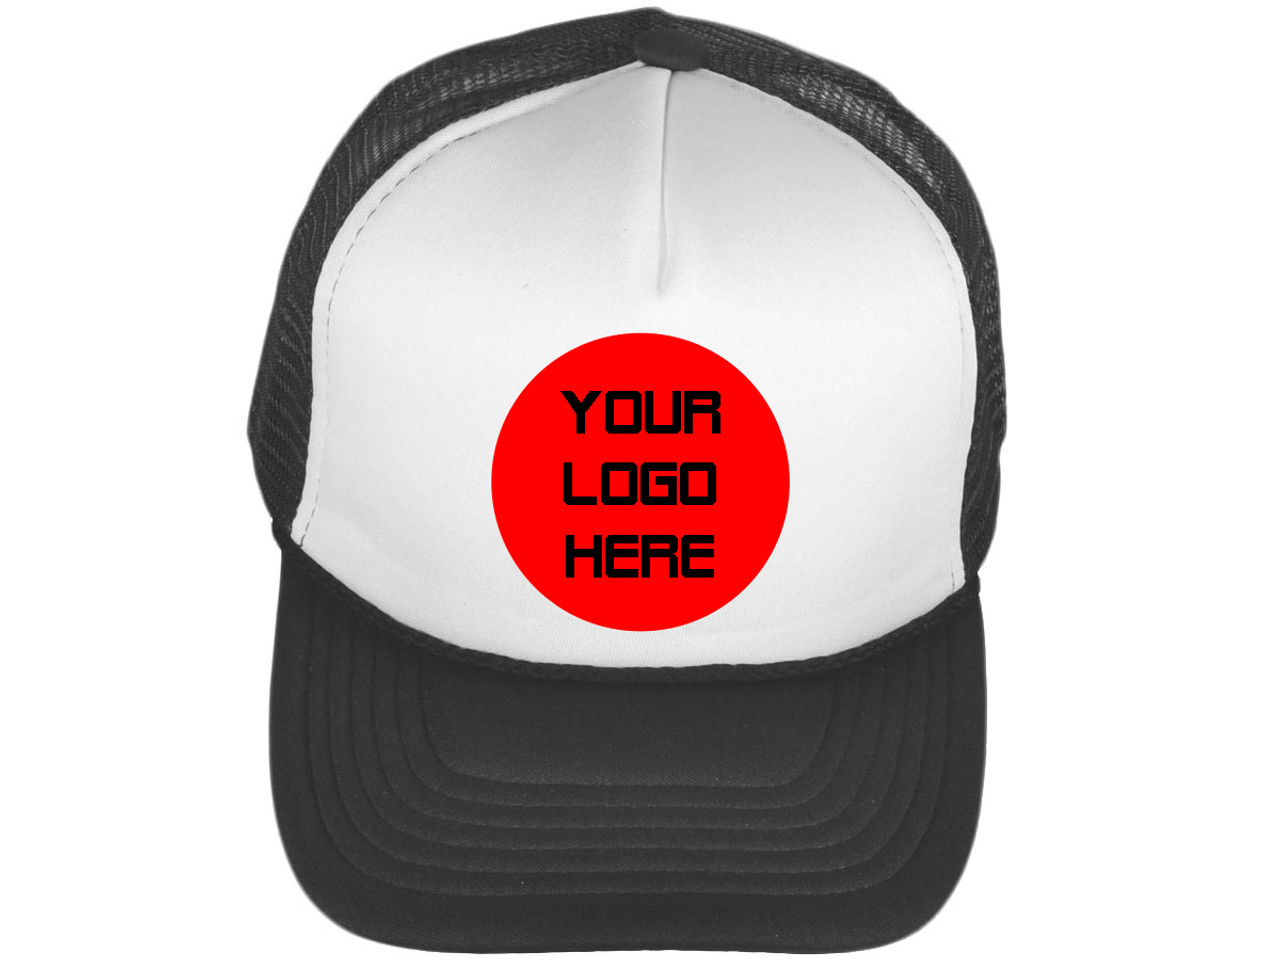 bb6f27f9b72d3 576pcs. Custom Trucker Hat Wholesale - Cheap Overseas ...